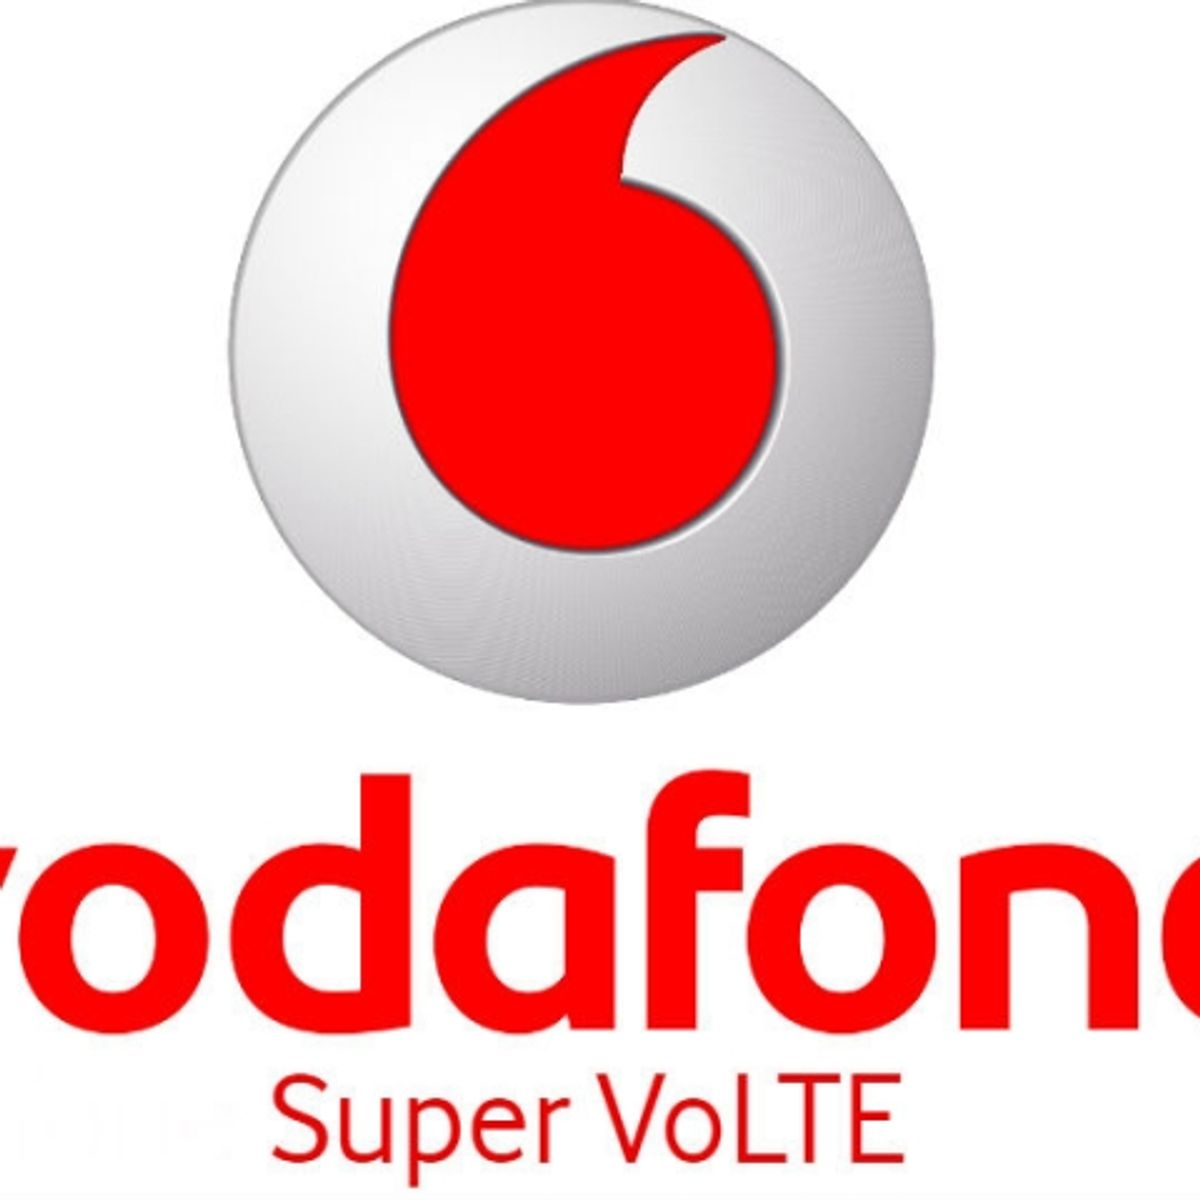 Vodafone launches 4G MiFi device with 150 Mbps downlink, 50